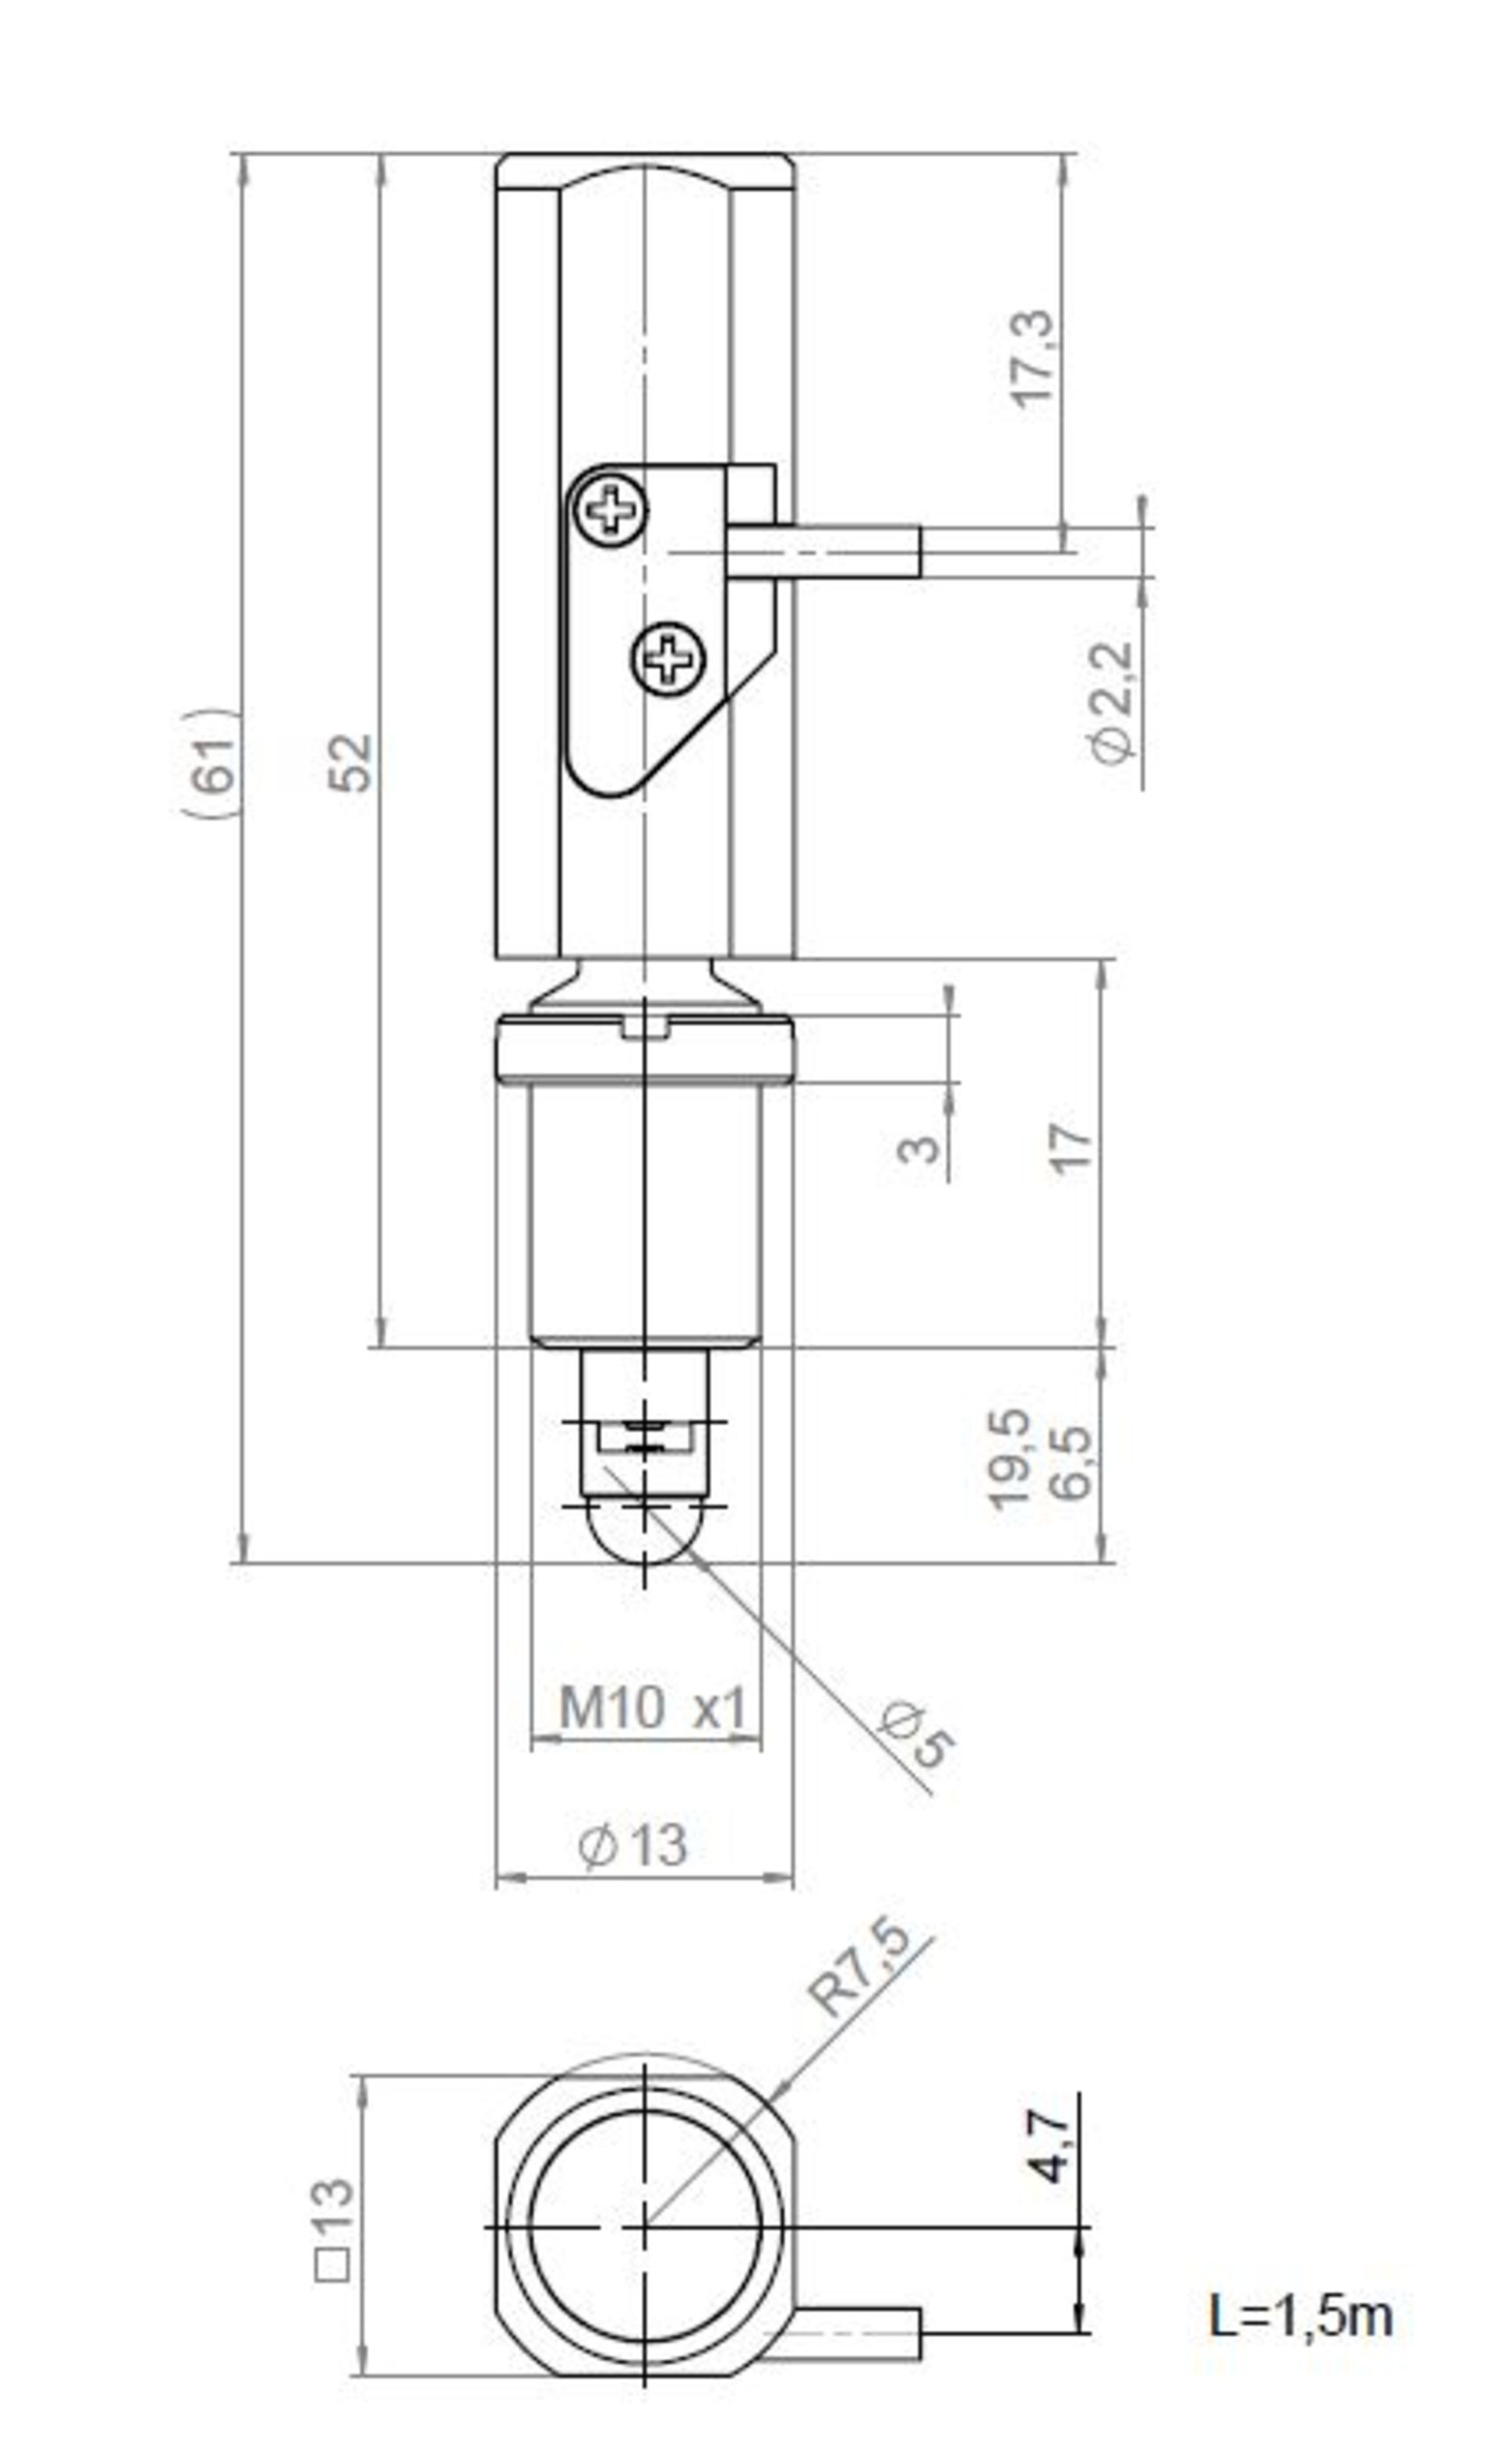 Din Plug Wiring Diagram Linear Actuator Trusted Diagrams N 412 With Pishift Piezomotor For Actuators Remotes